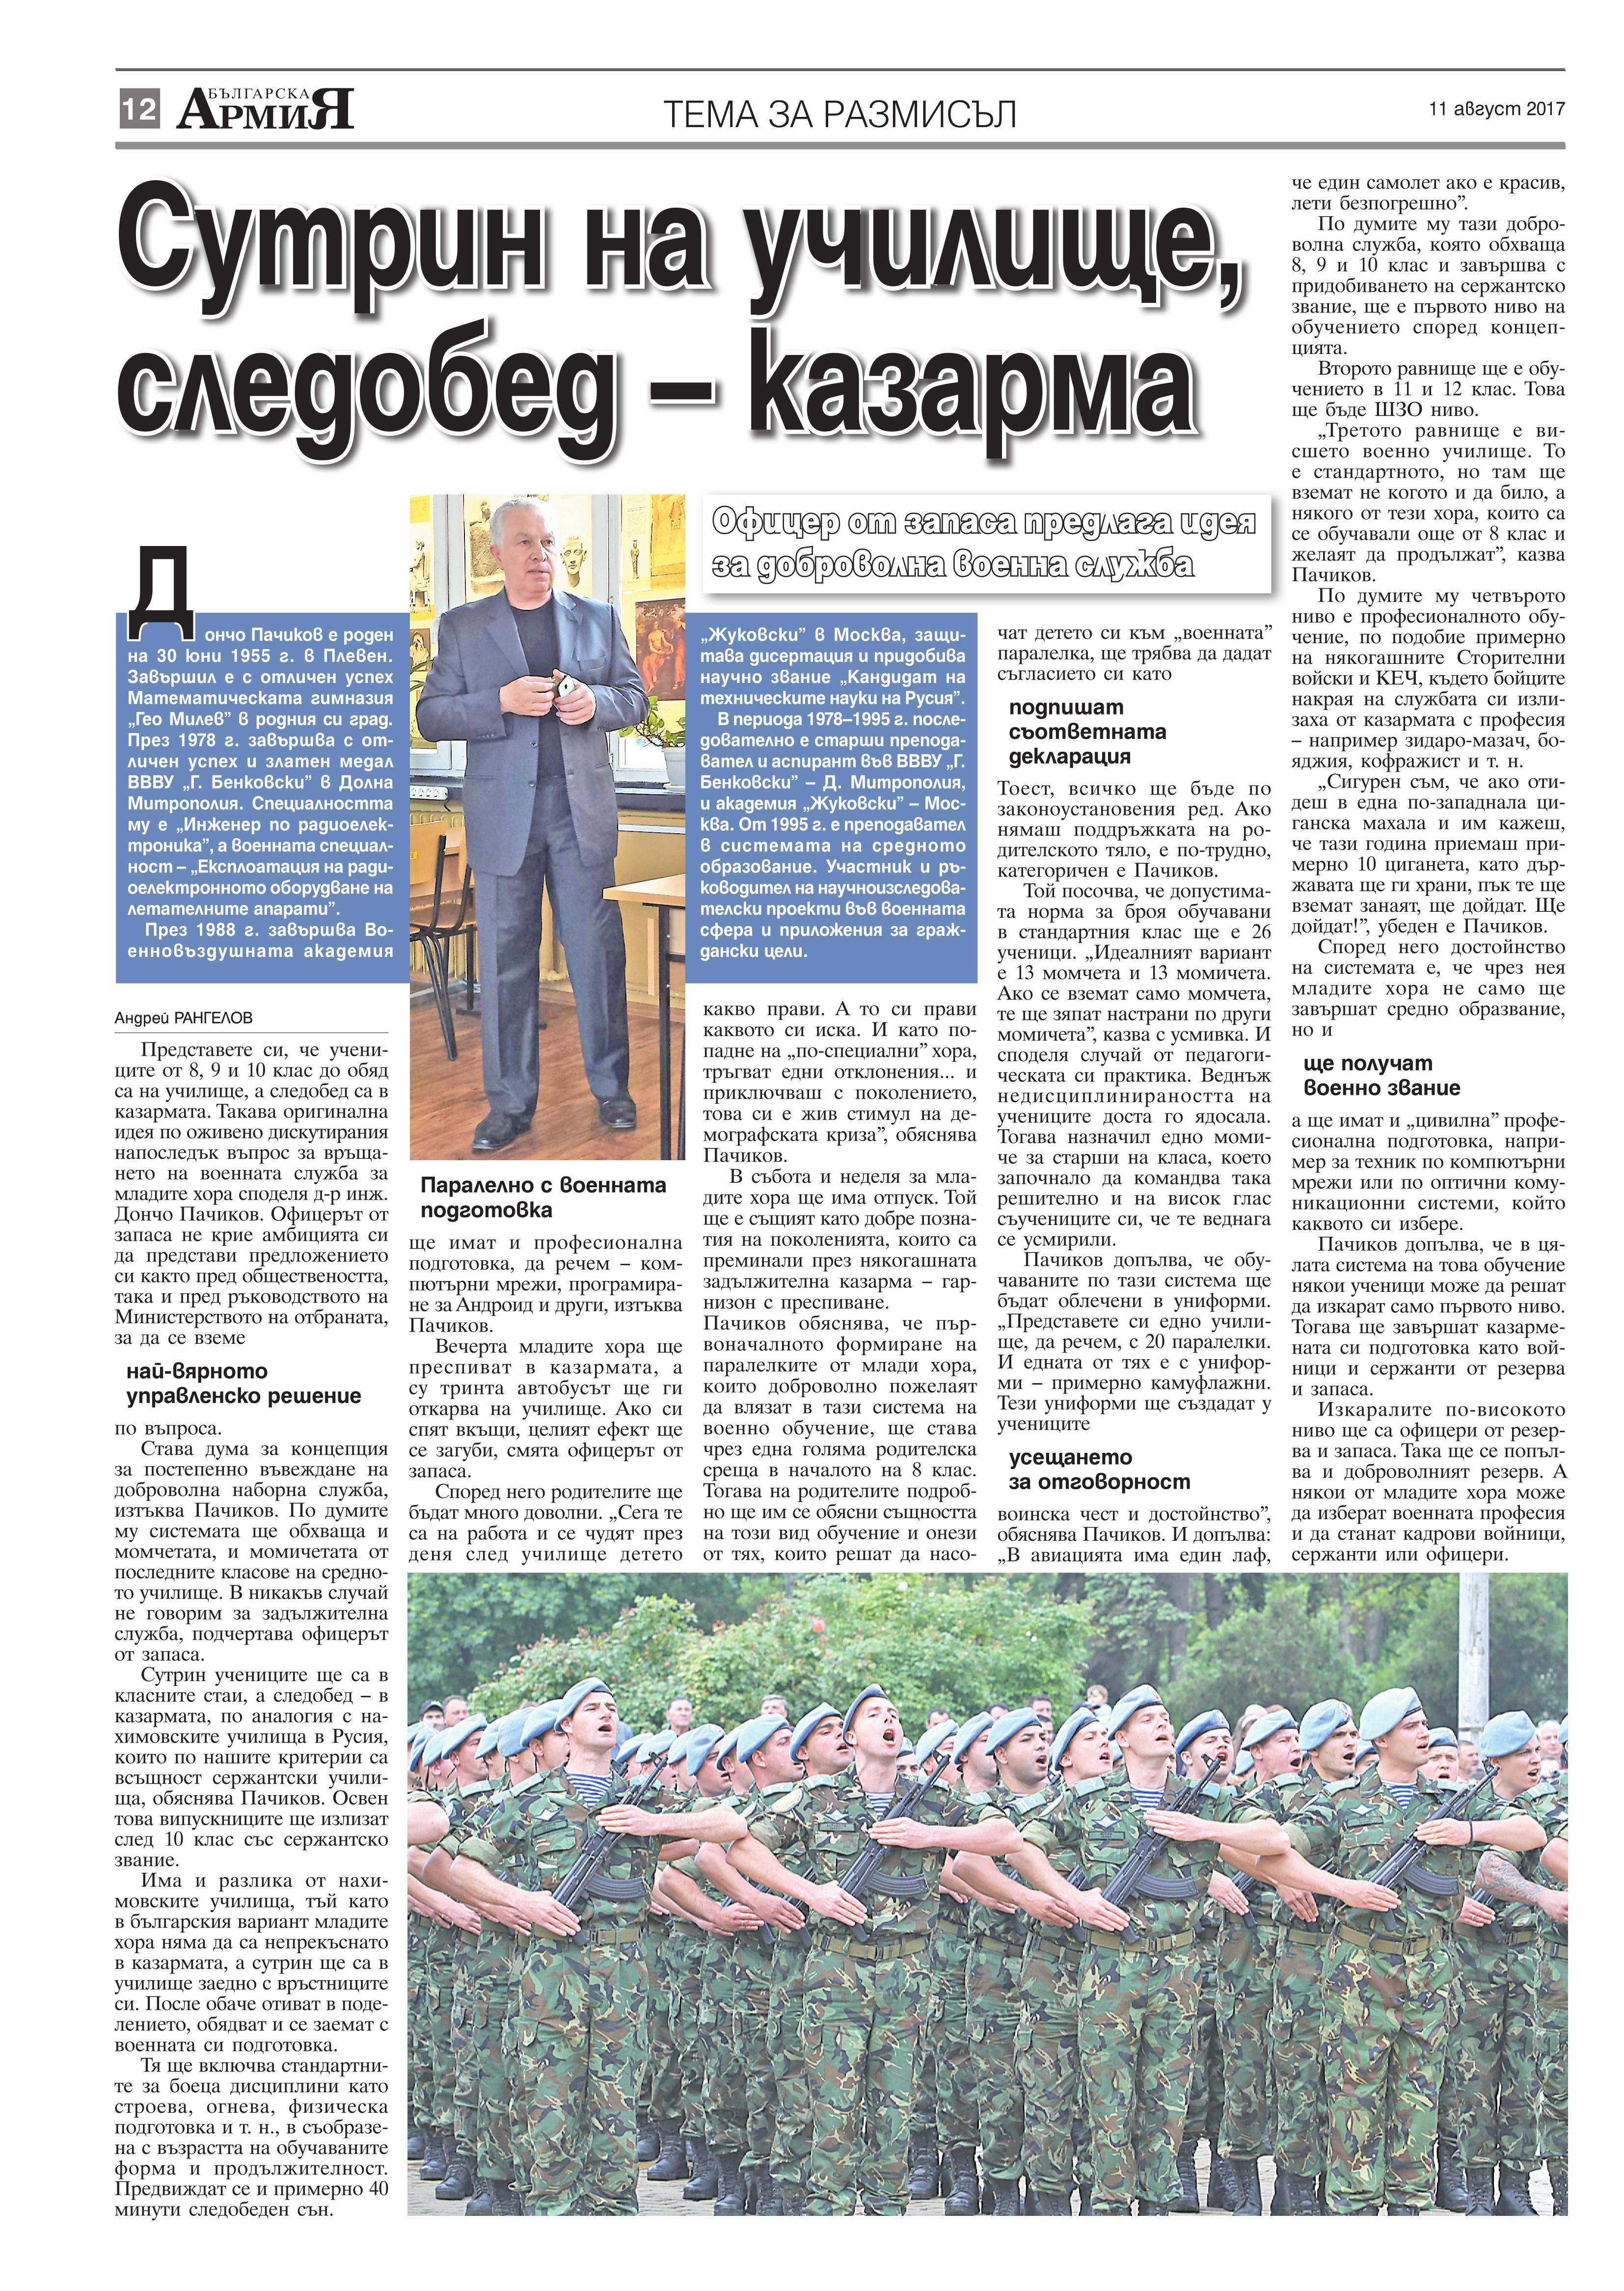 http://armymedia.bg/wp-content/uploads/2015/06/12.page1_-27.jpg